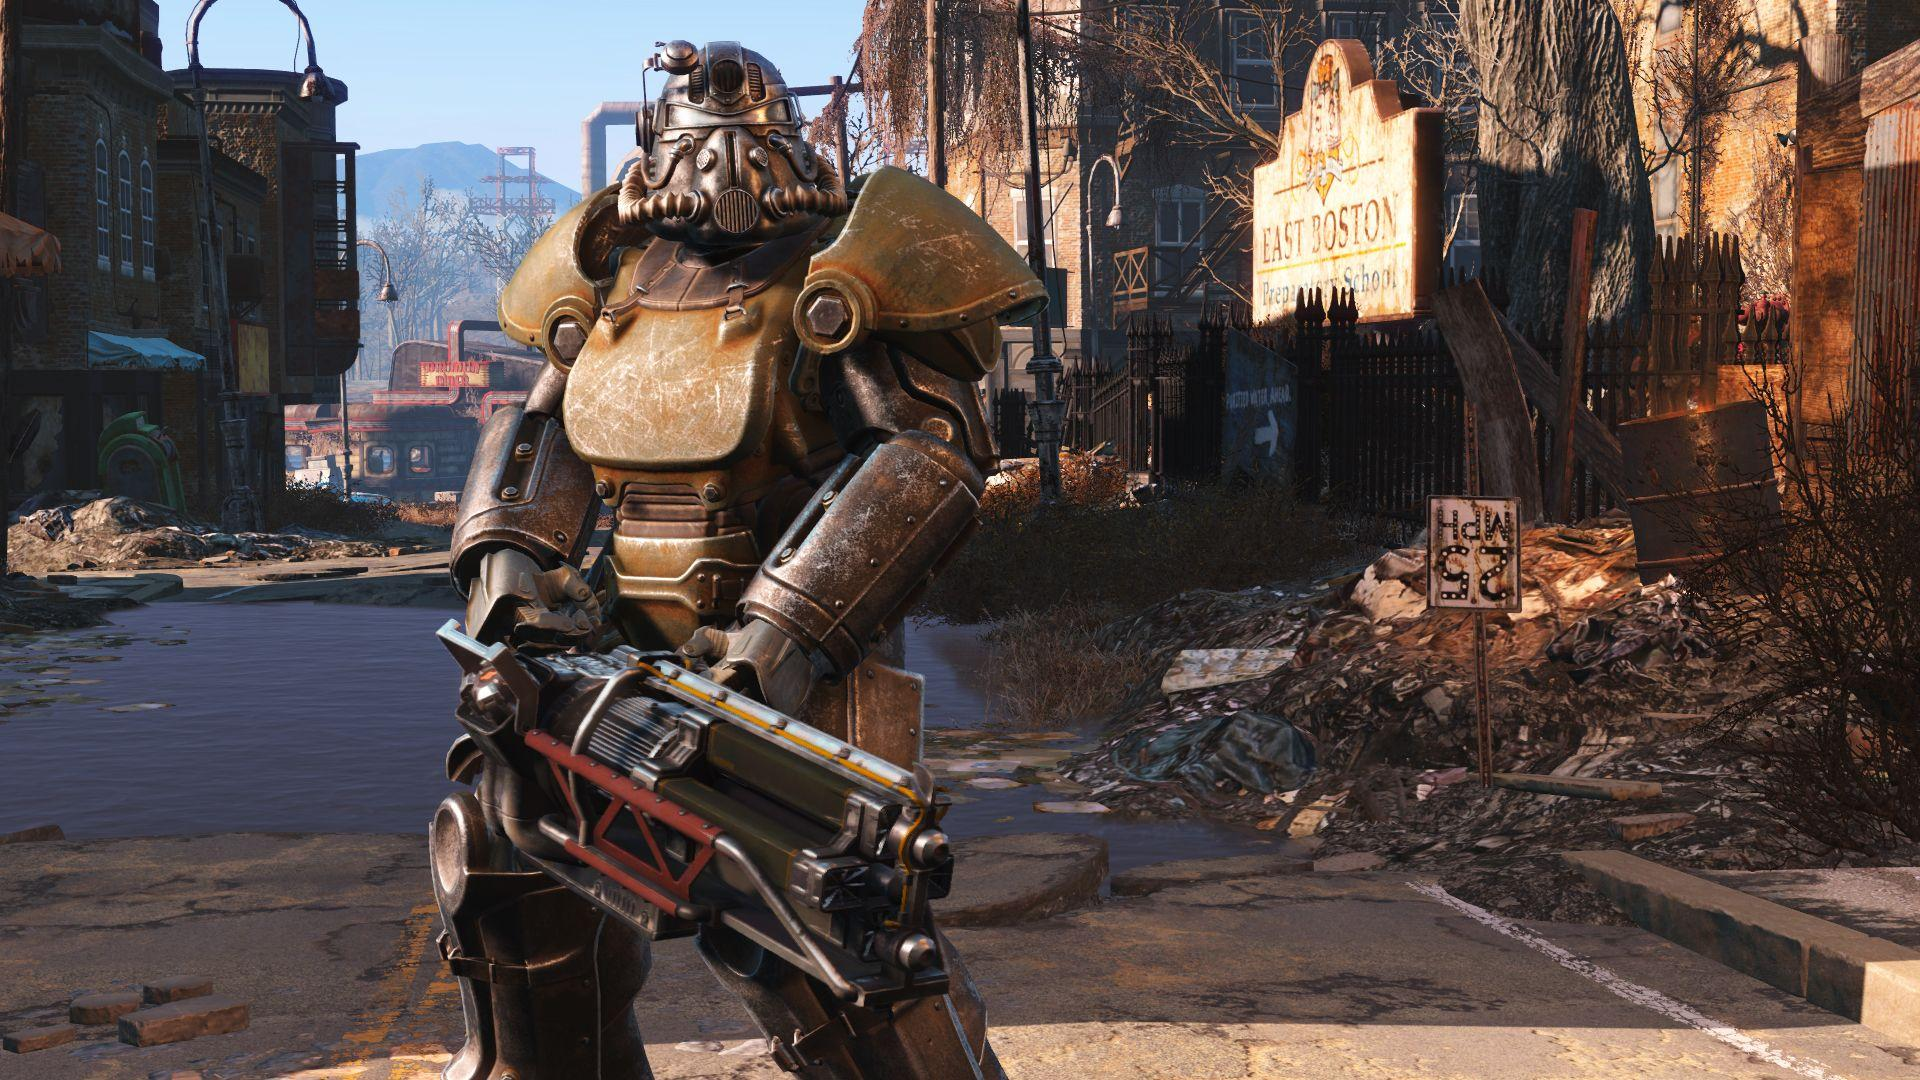 Fallout 4 Game of the Year Edition release date announced - SlashGear